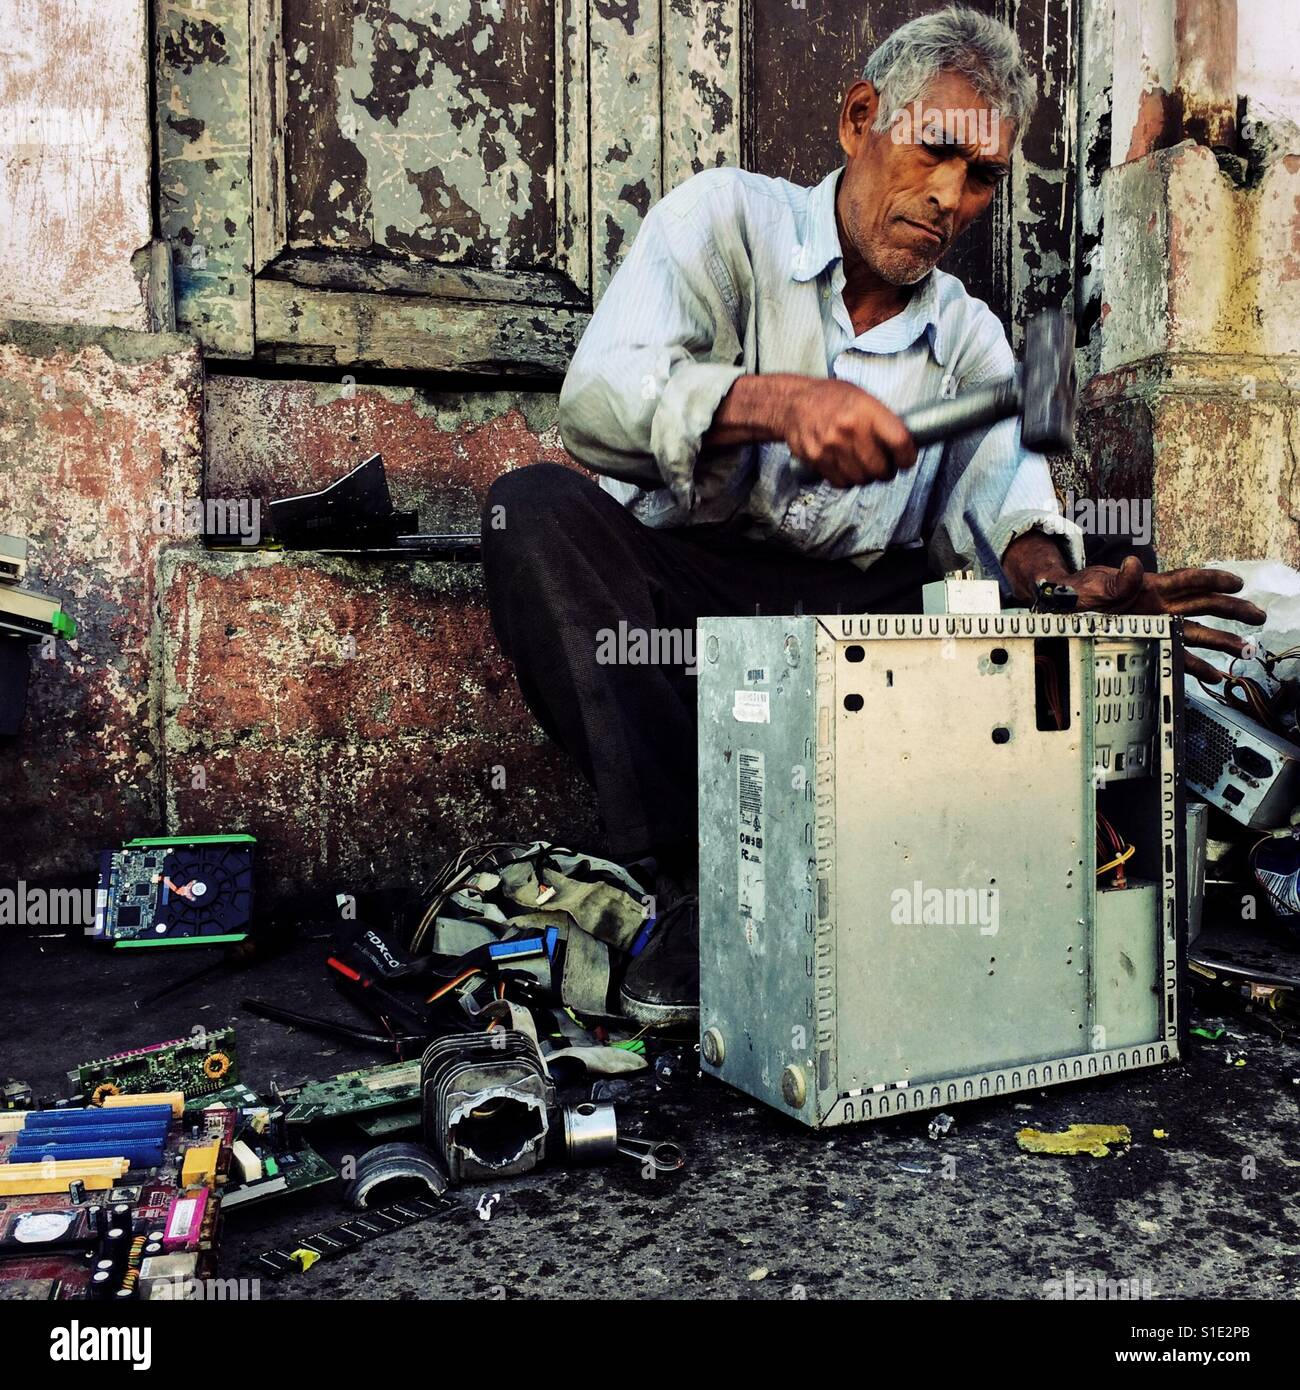 A Salvadoran recycler dismantles an old desktop computer to obtain valuable components and metals on the street - Stock Image